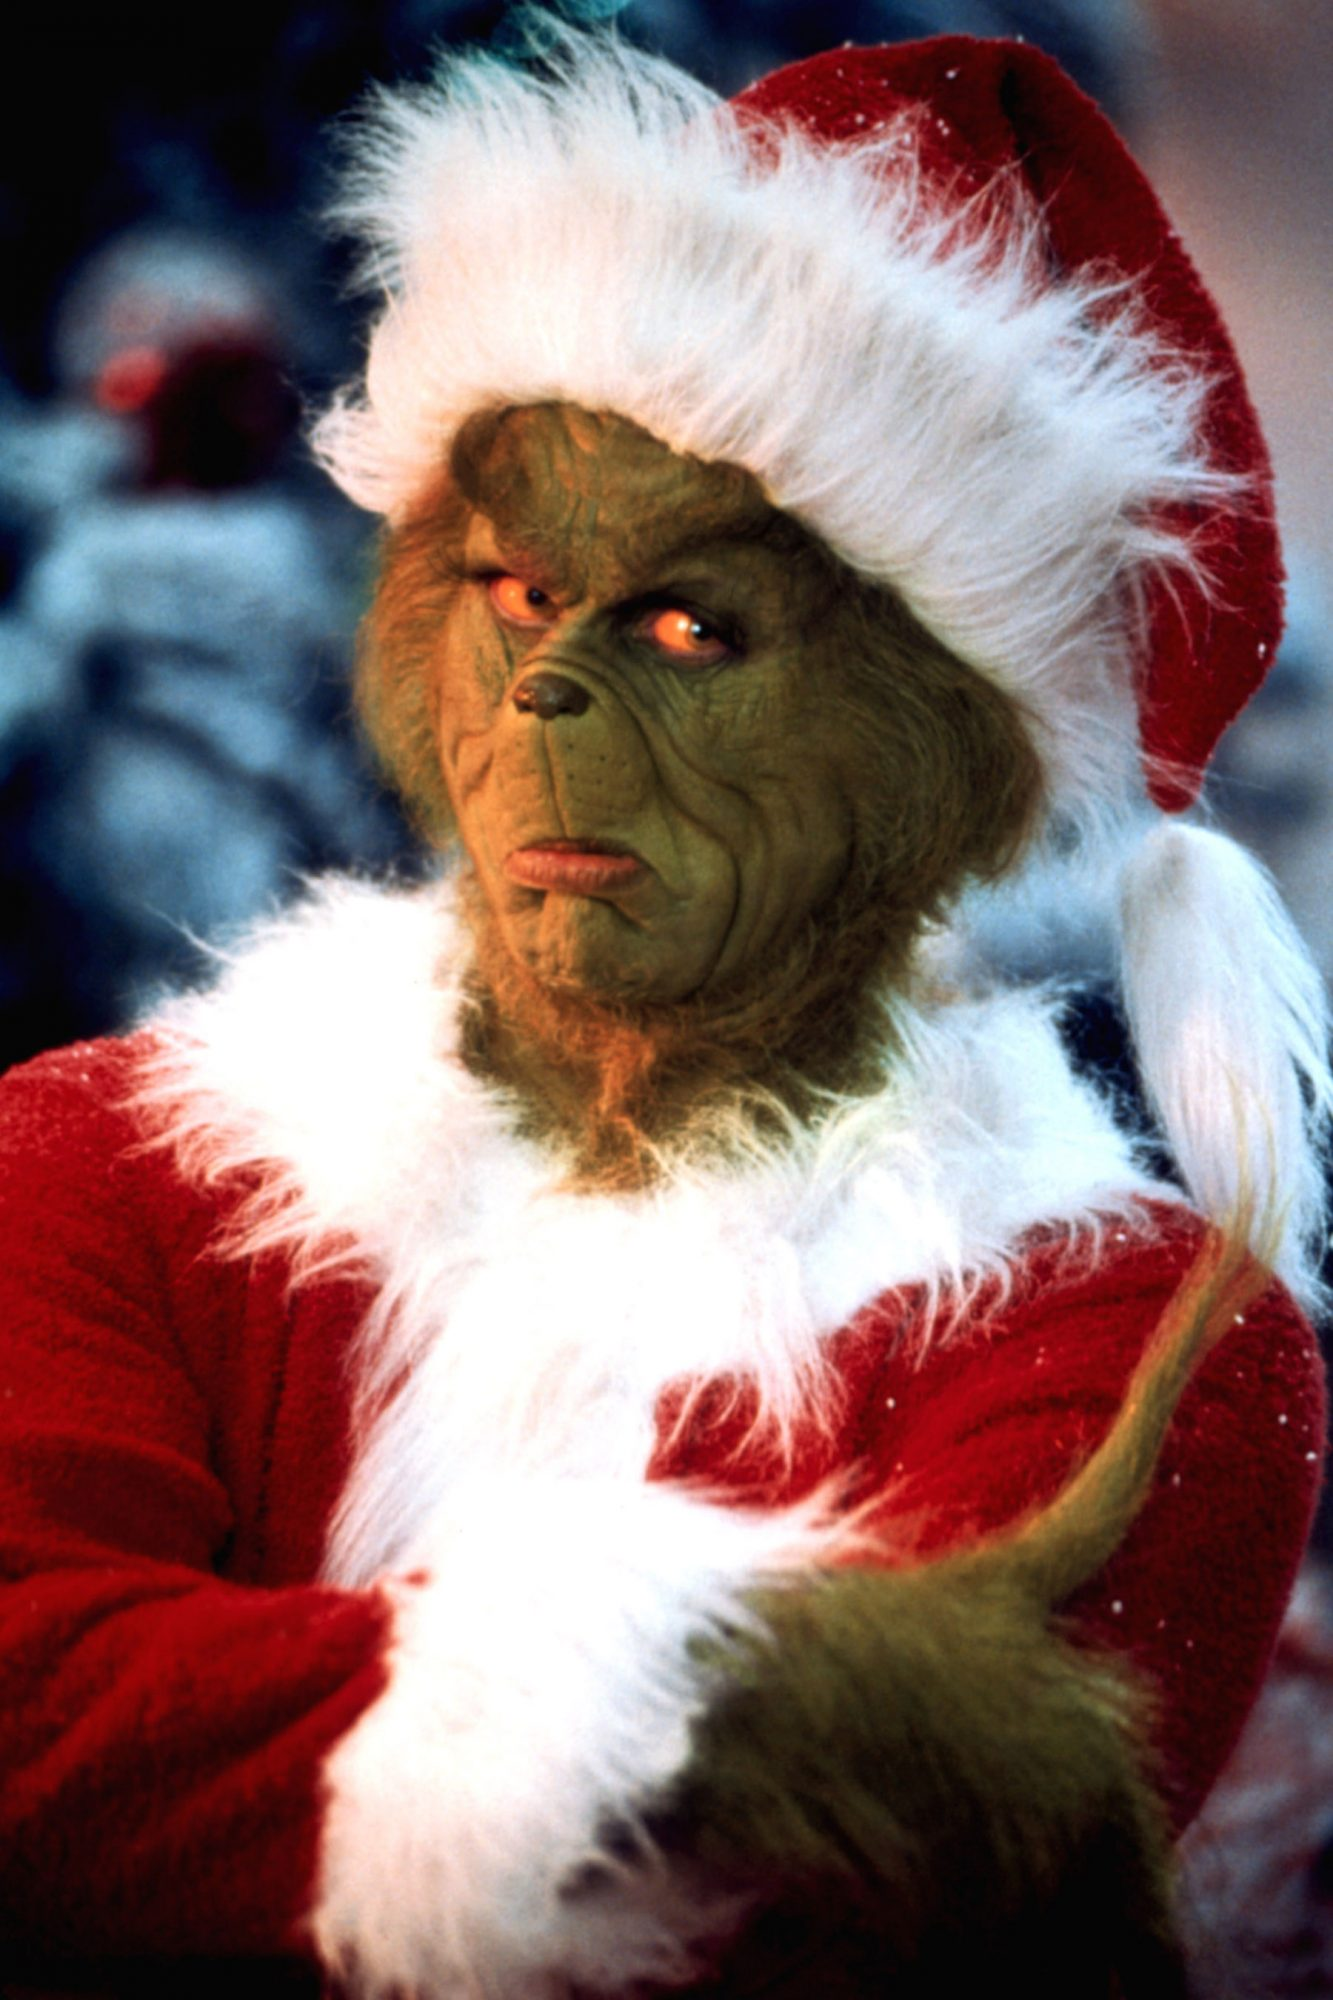 DR. SEUSS' HOW THE GRINCH STOLE CHRISTMAS, Jim Carrey, 2000